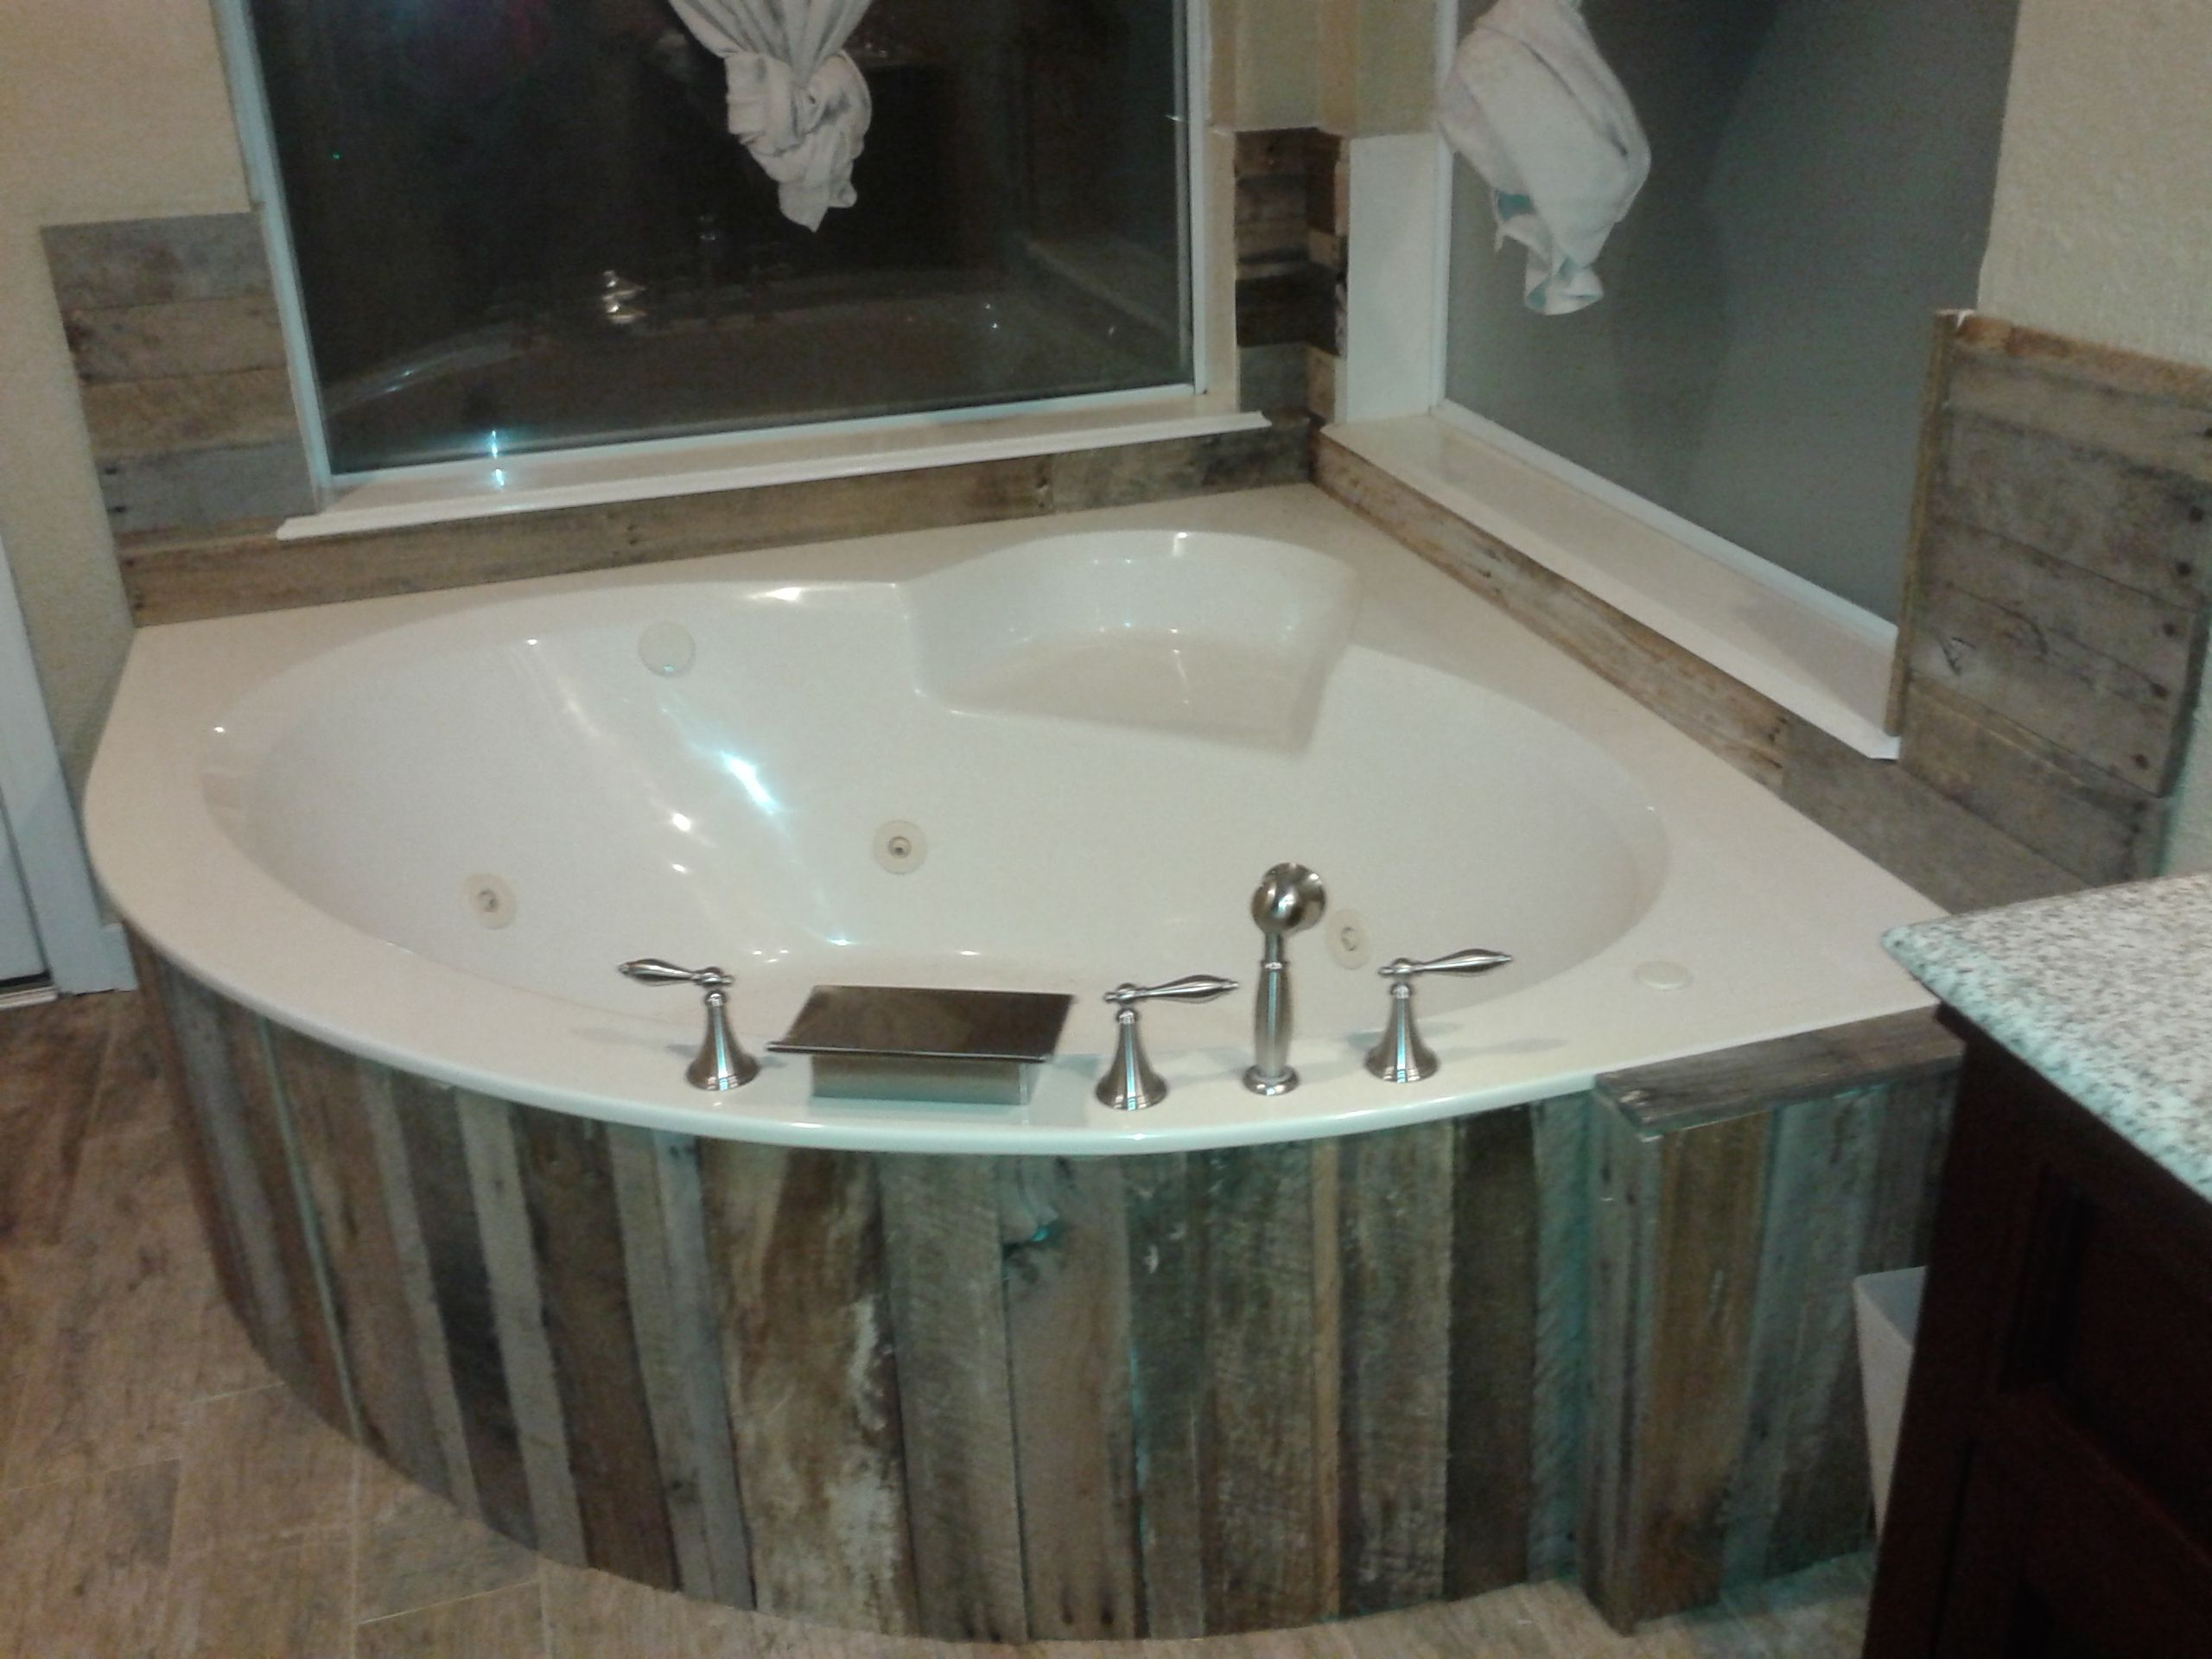 luxury shower info bathtub conversion tub ideas amp dilata waterfall contemporary tile pictures embellishment renovation of to bathroom